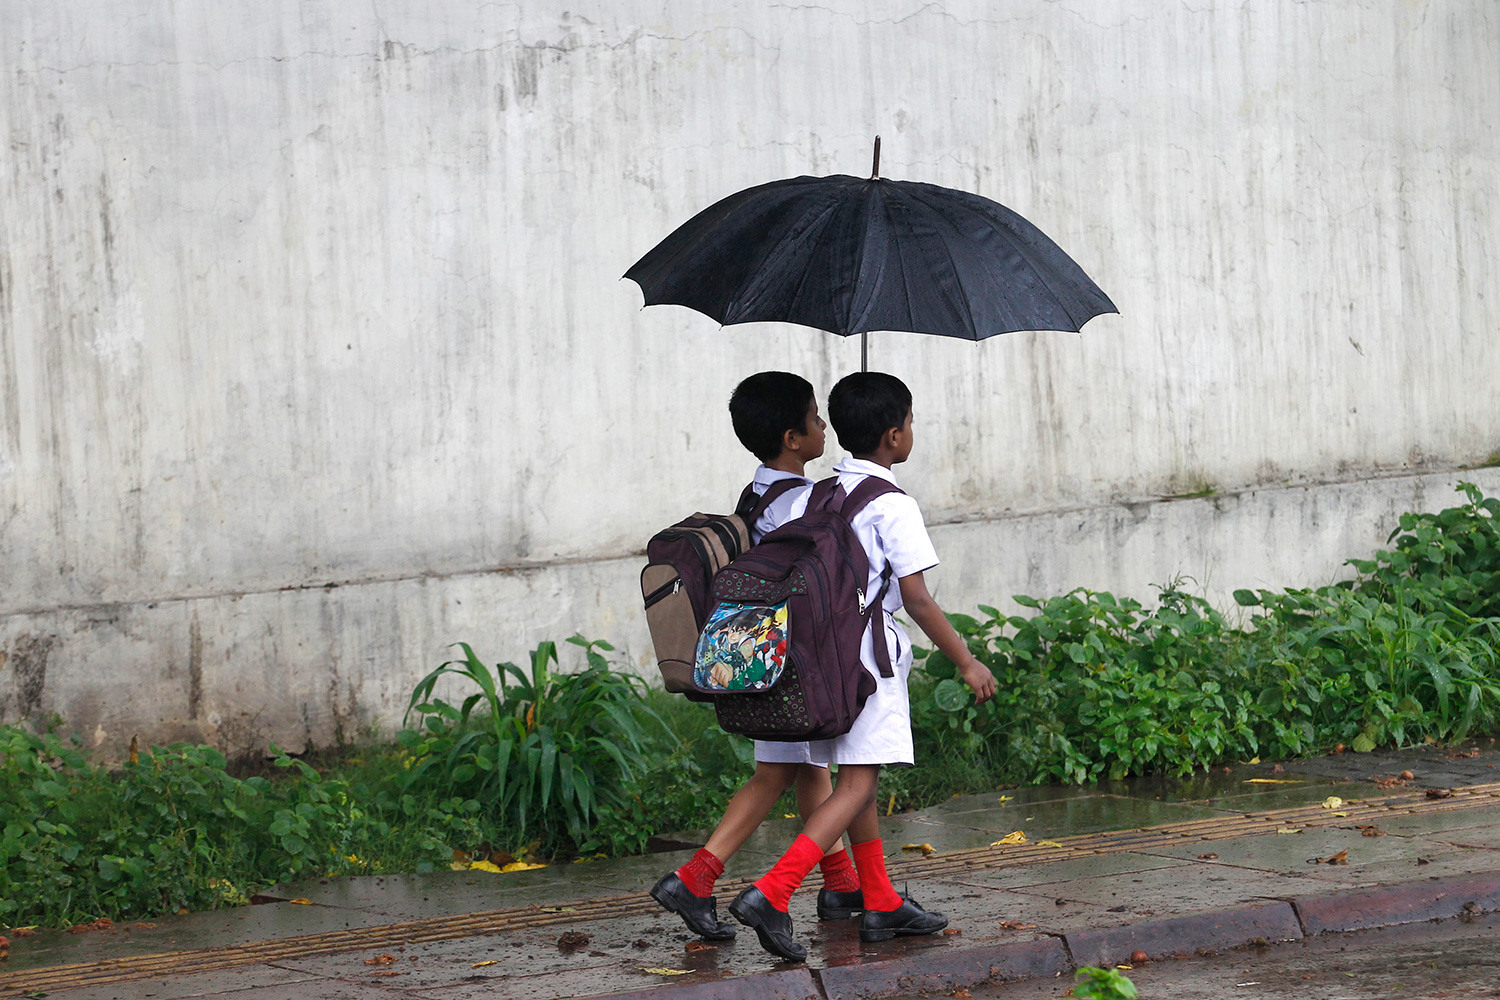 The photo shows two small children with umbrellas walking through the rain.